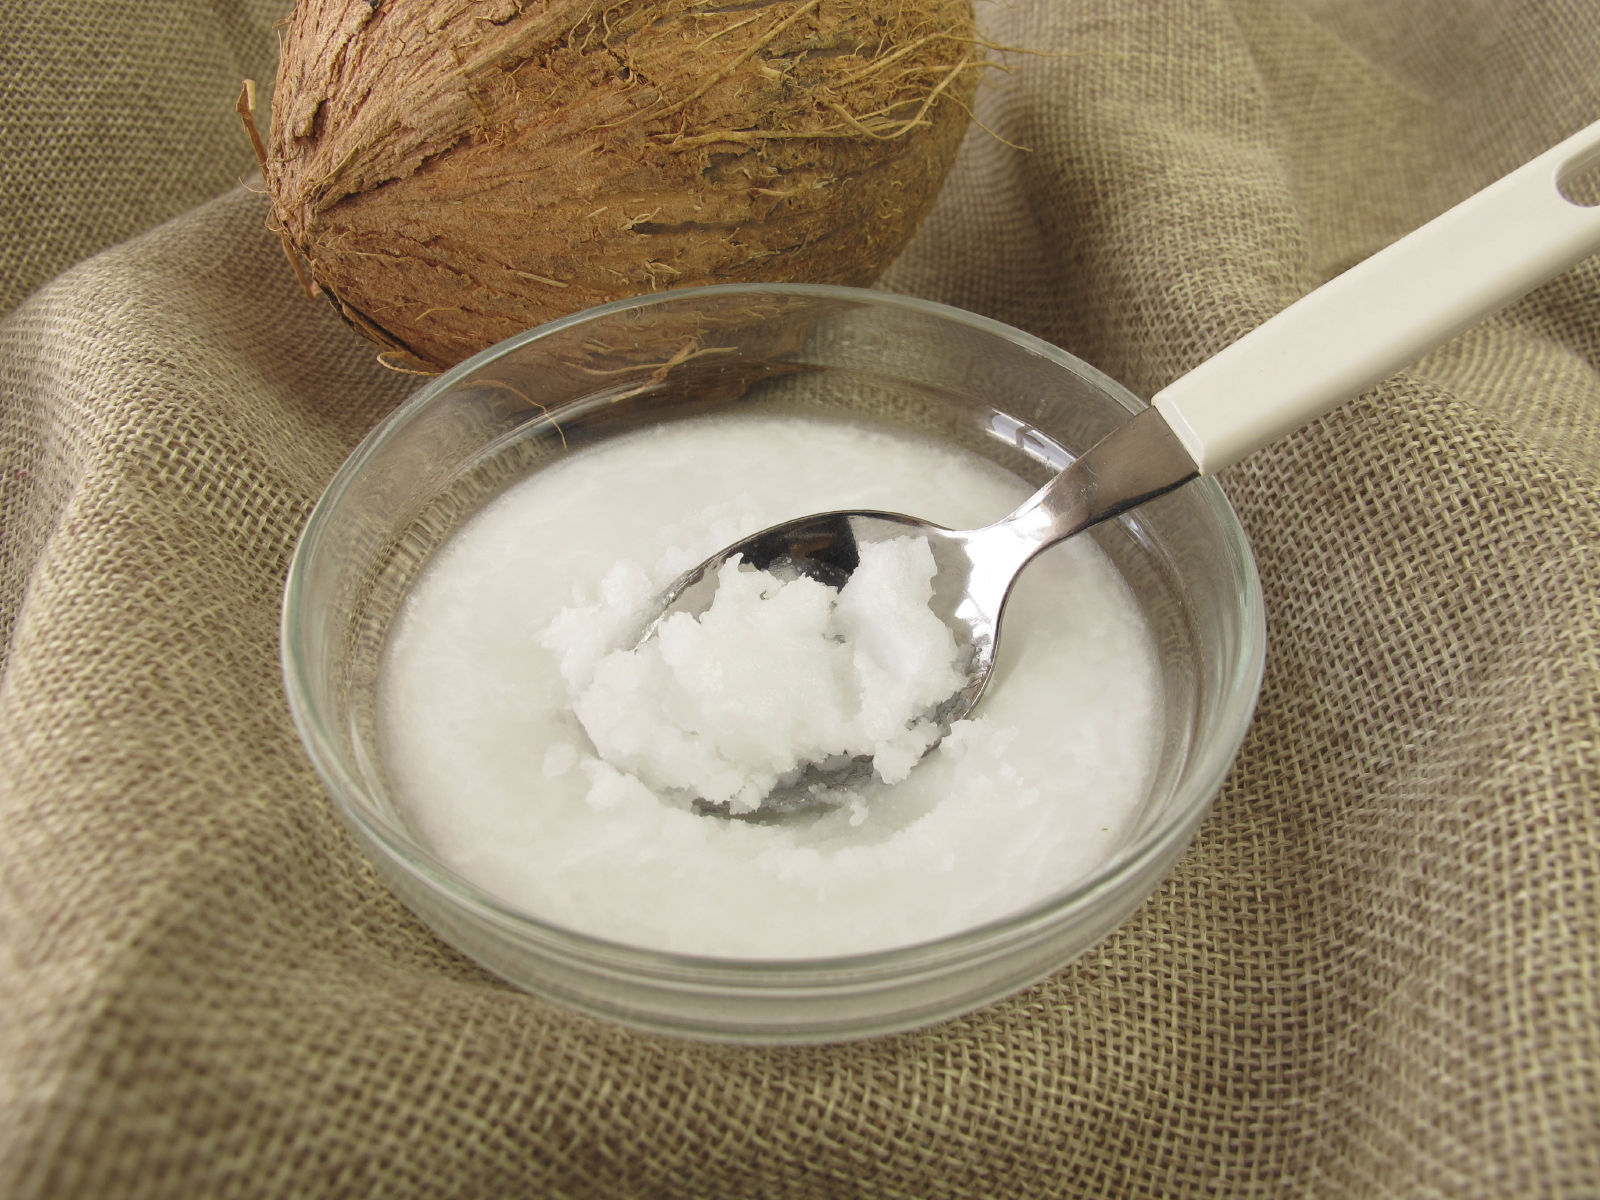 The mainstream gave it a bad rap for years. But eating more coconut oil may be the easiest way to help save your health.